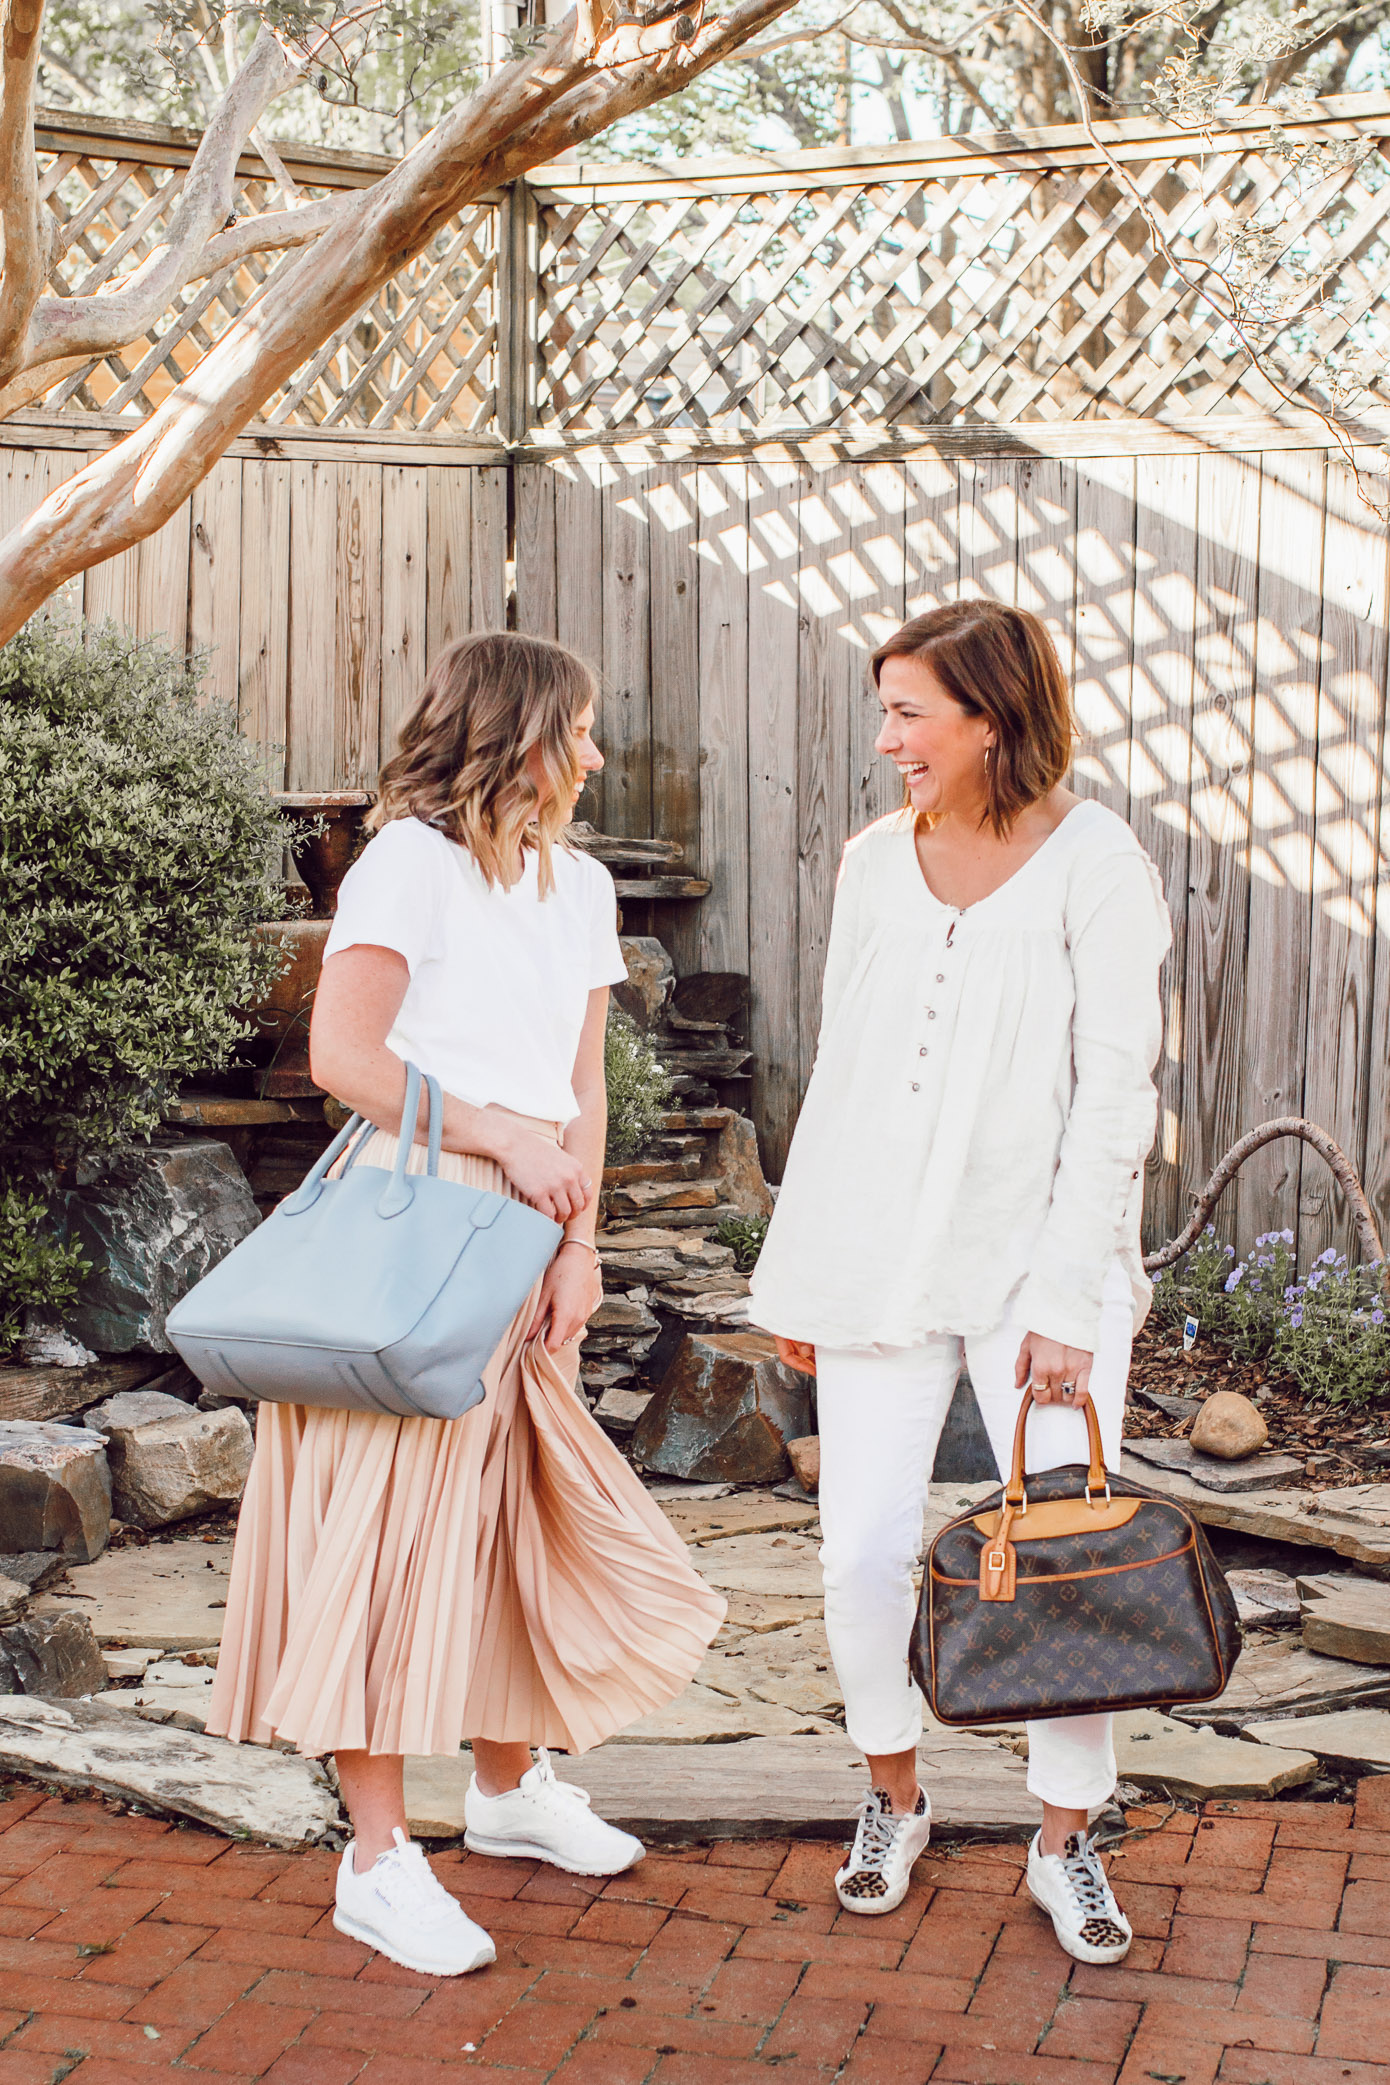 Tips for styling neutrals for spring | Ft. Everlane, Chicwish, Free People, Gap, Golden Goose, Reebok | Louella Reese